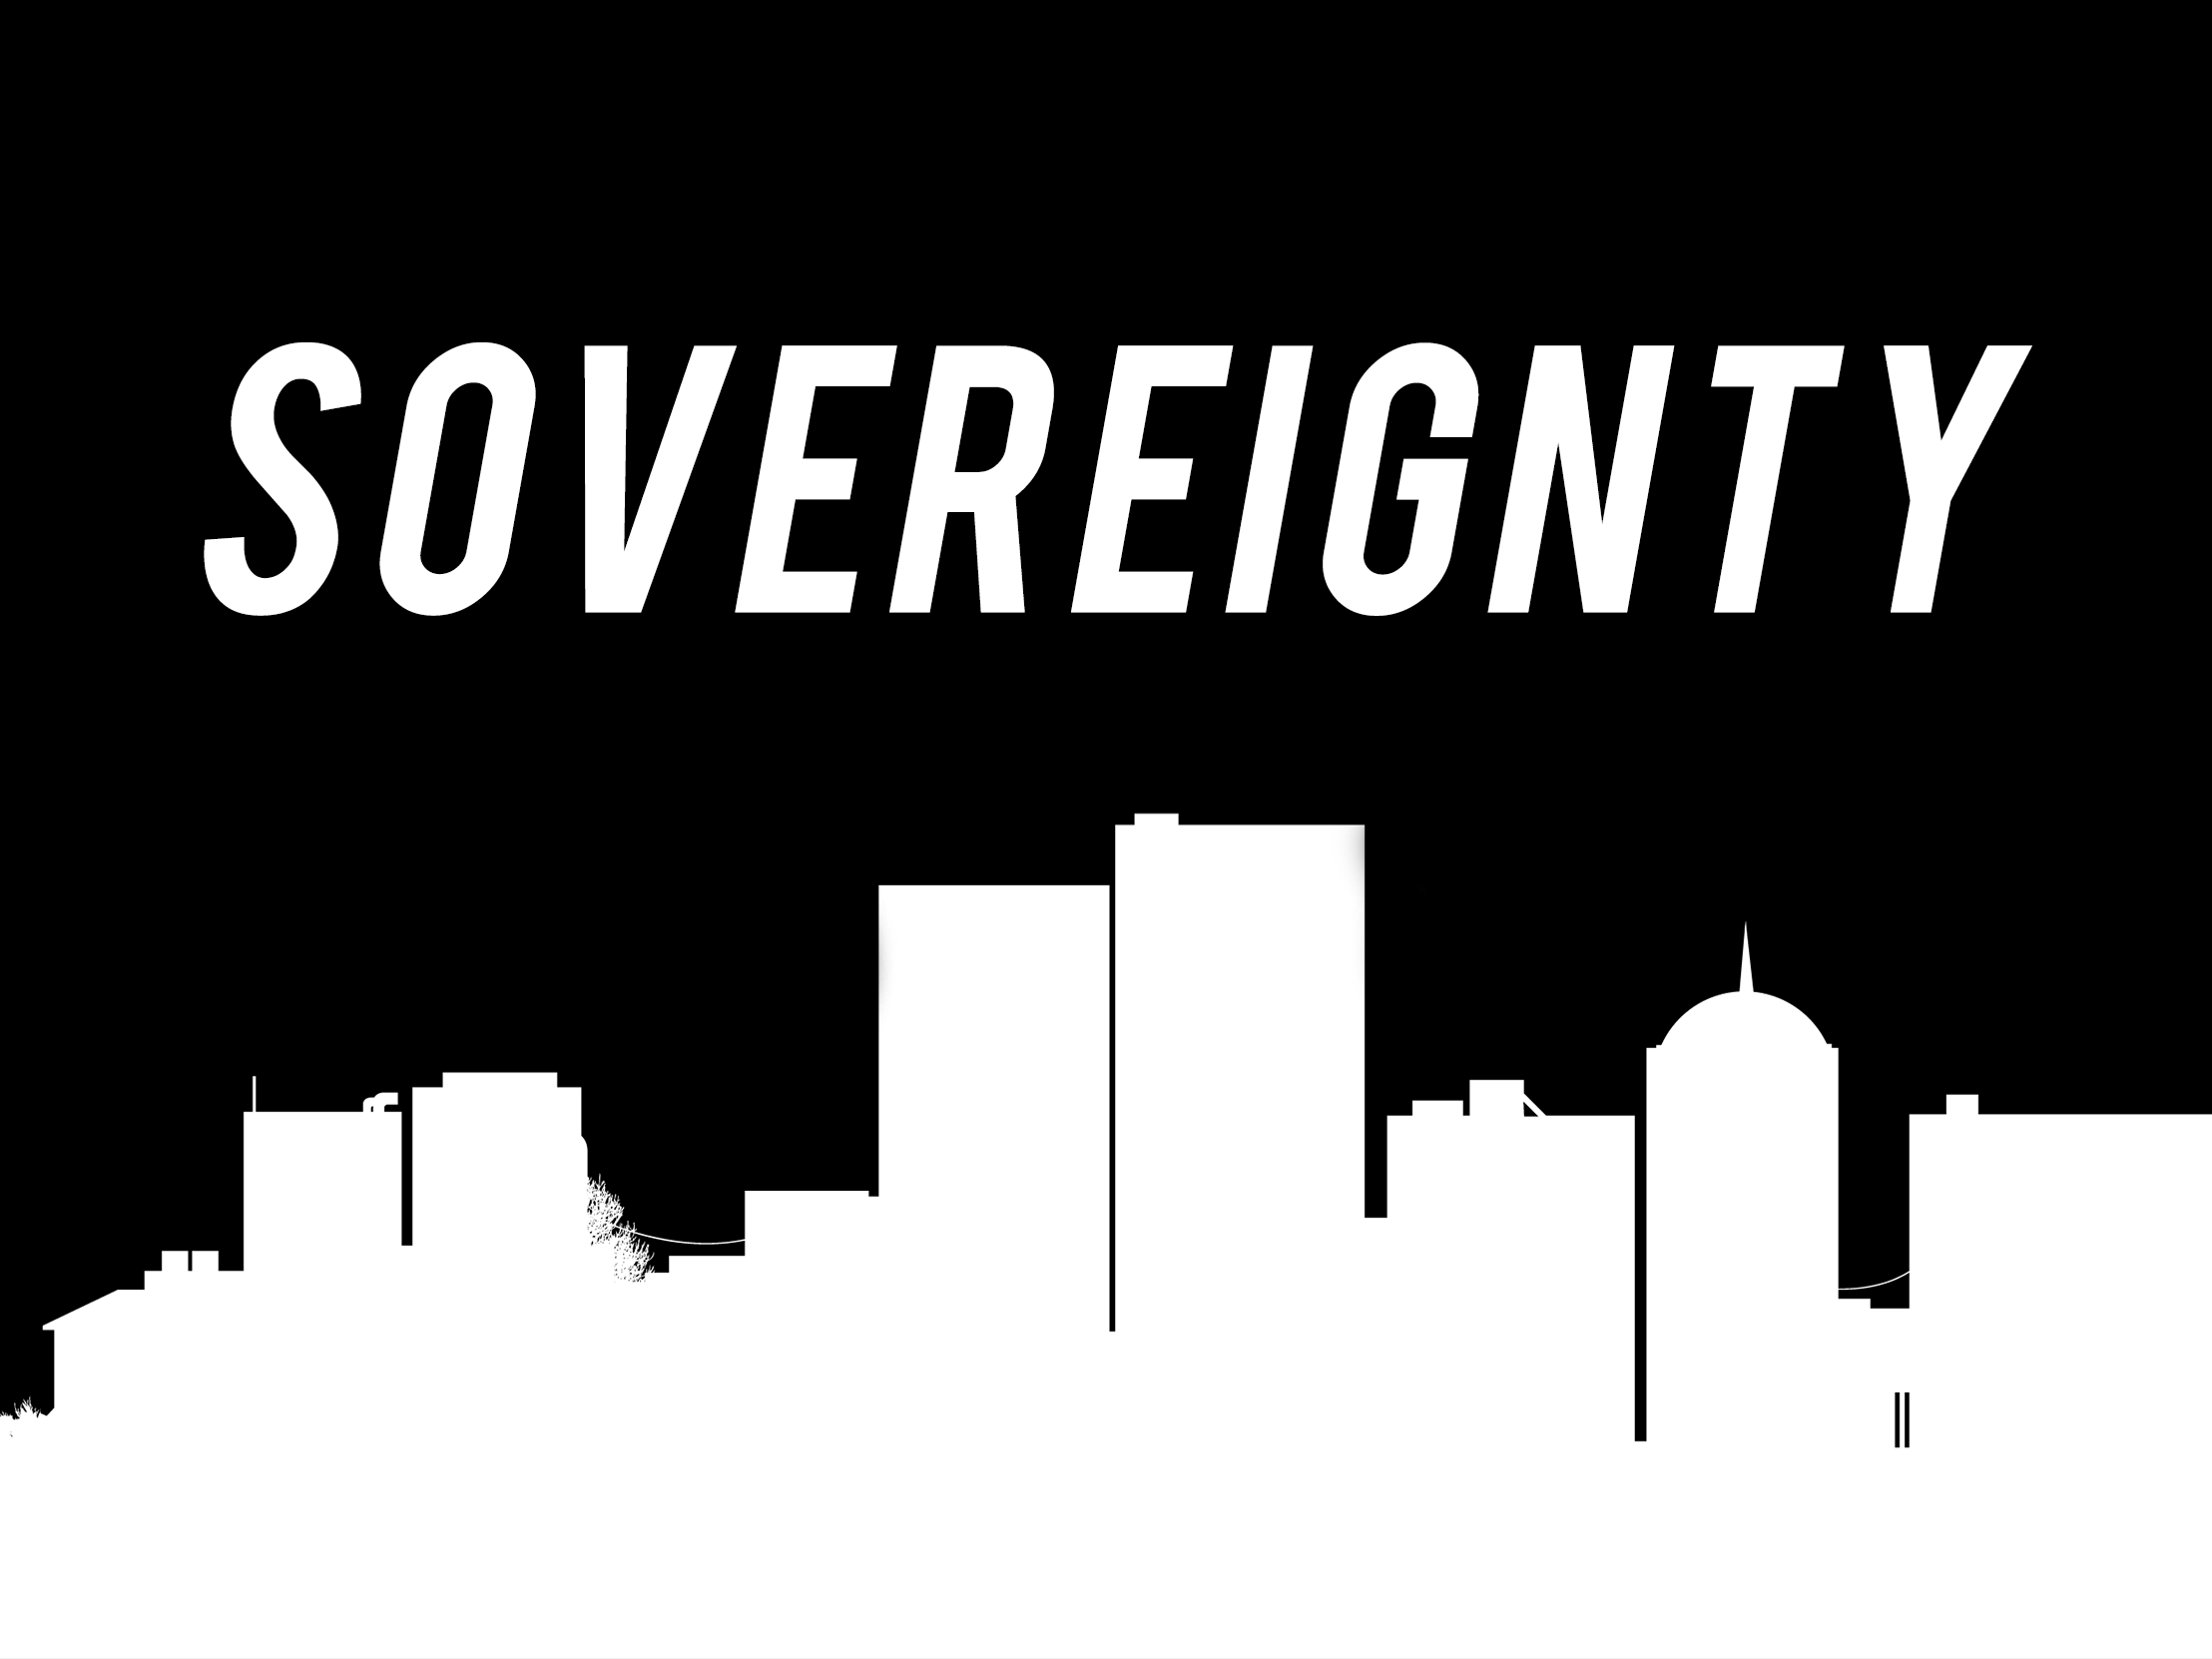 SovereigntyLogo640